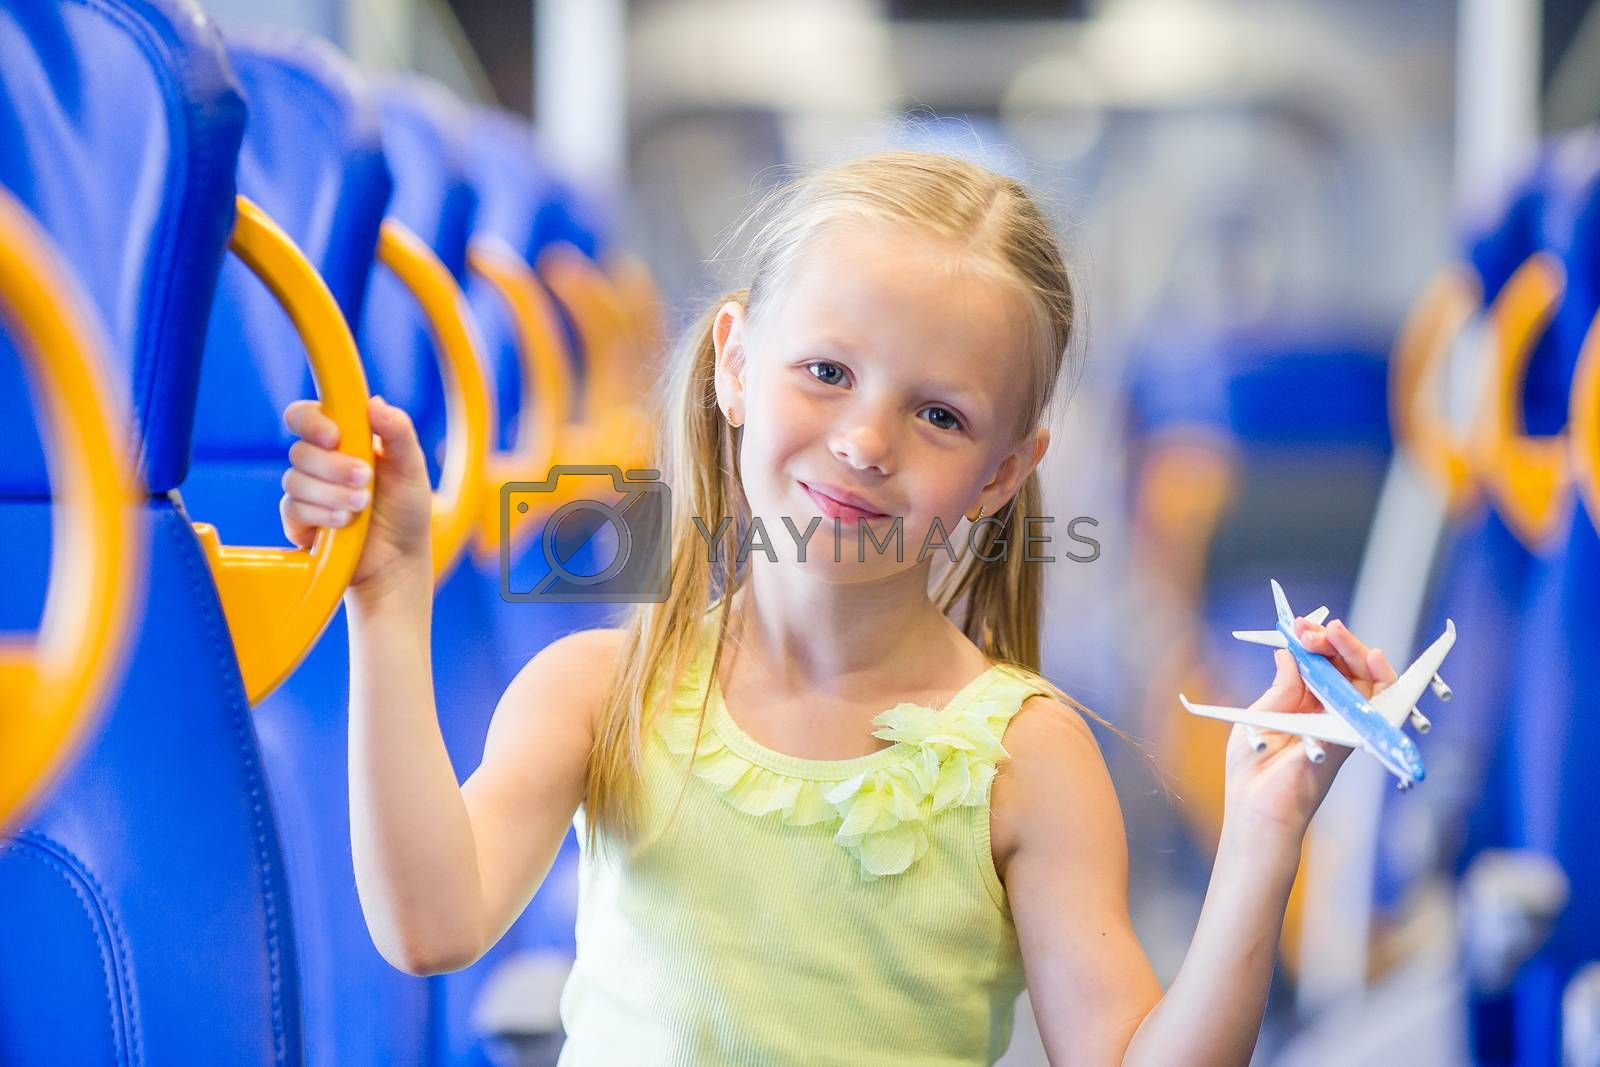 Adorable little girl traveling on train and having fun with airplane model in hands by travnikovstudio